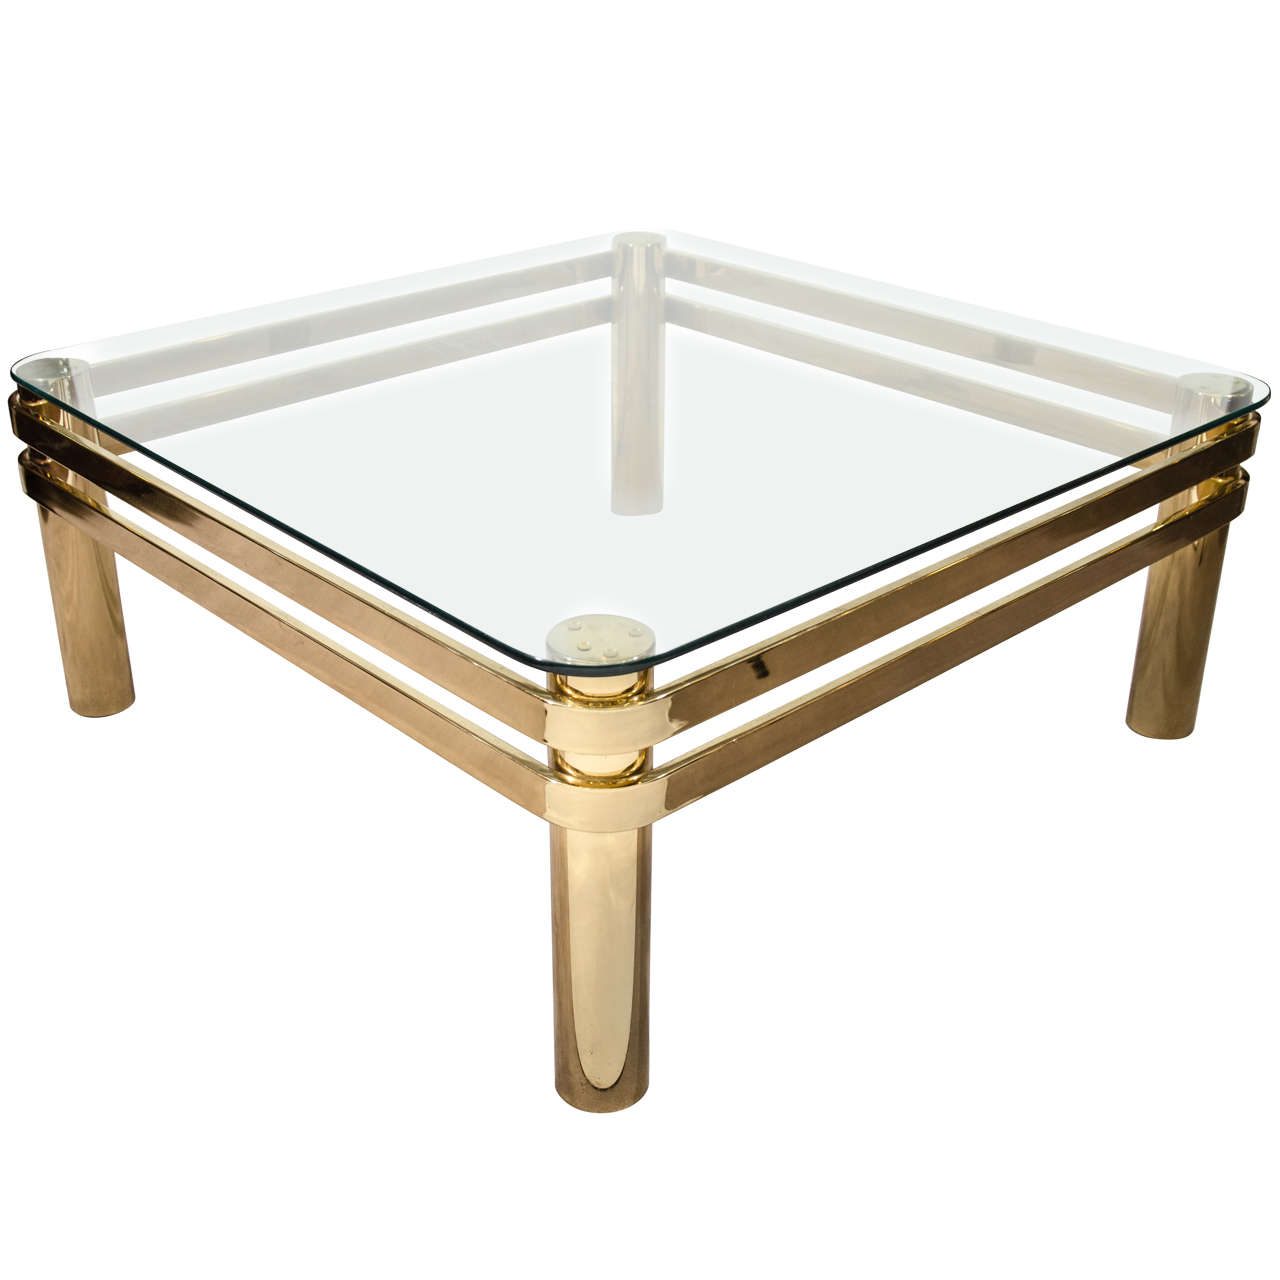 A Mid Century Brass And Glass Coffee Table At 1stdibs